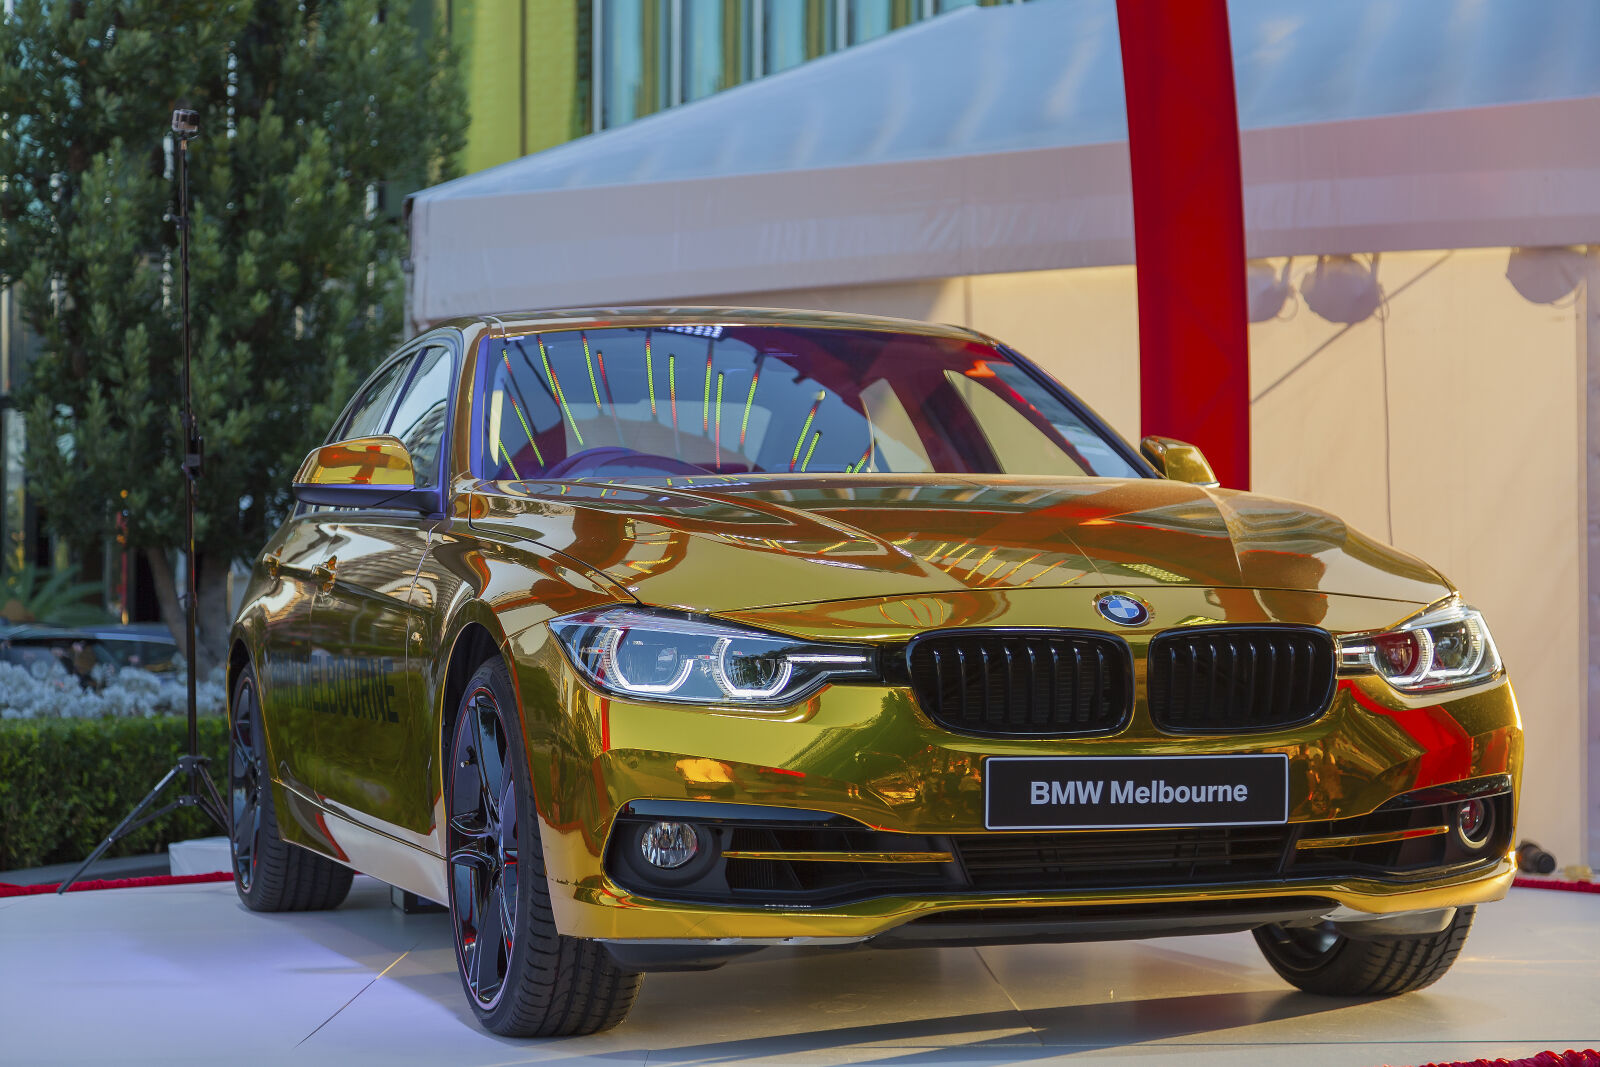 bmw, golden, luxury, car